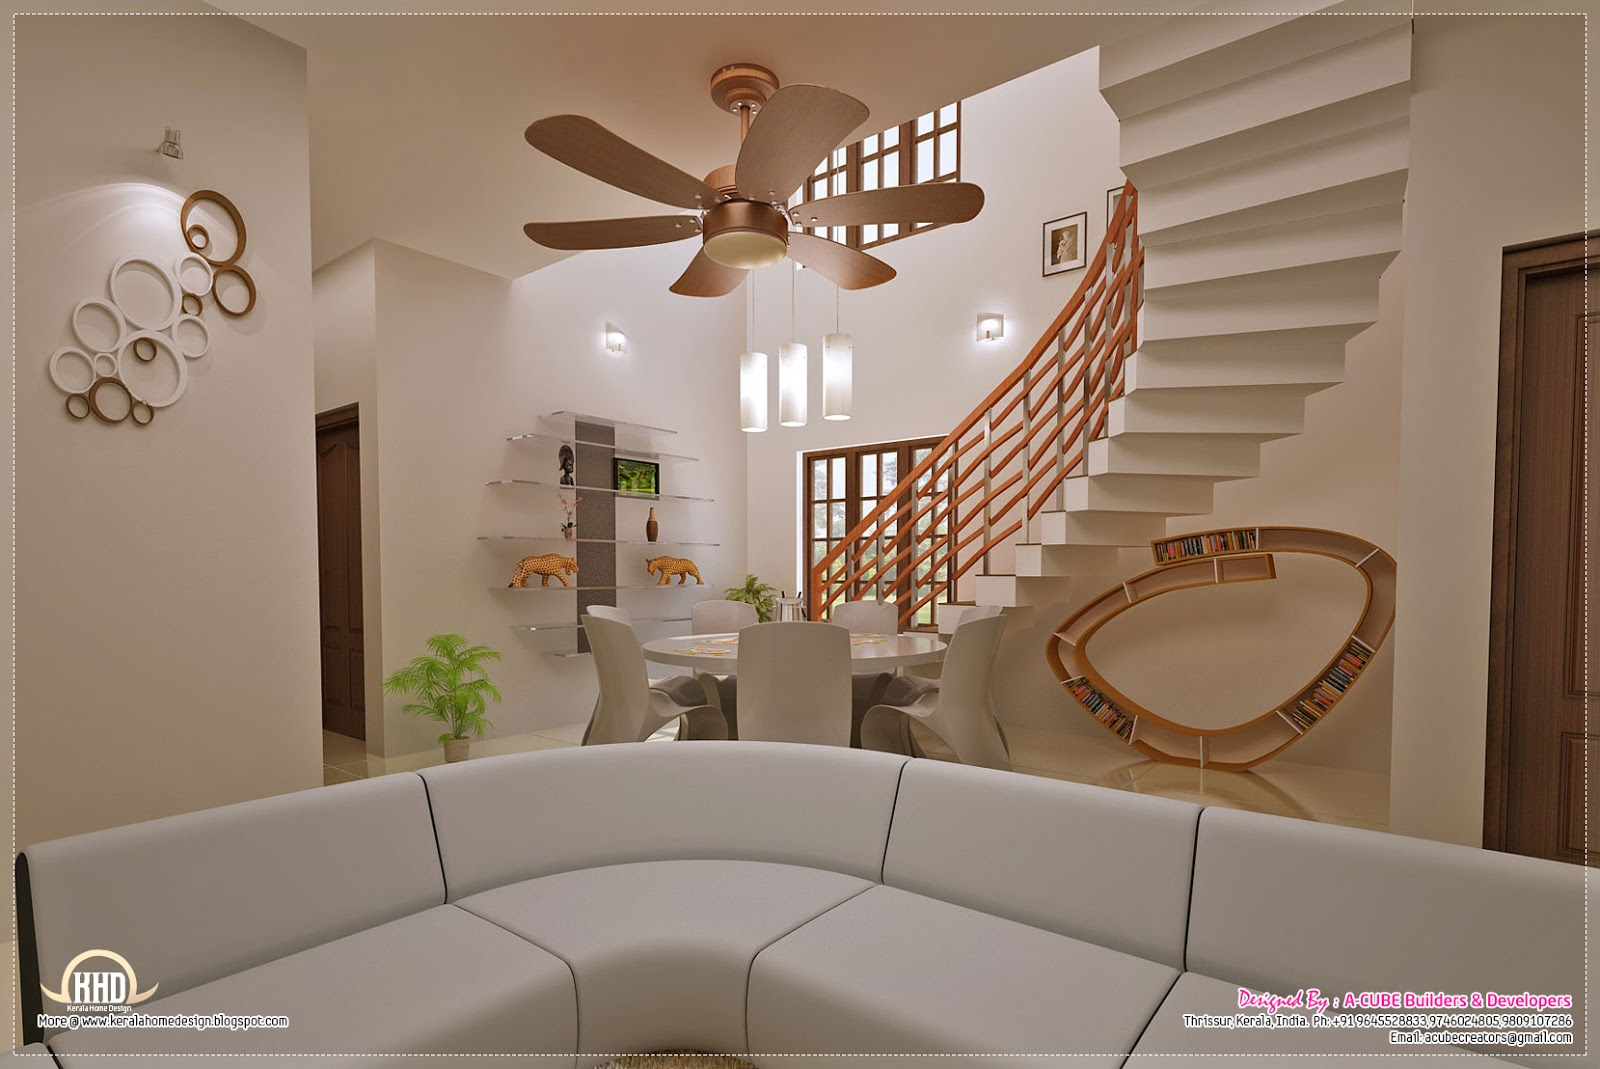 Awesome interior decoration ideas kerala home design and for House interior decoration